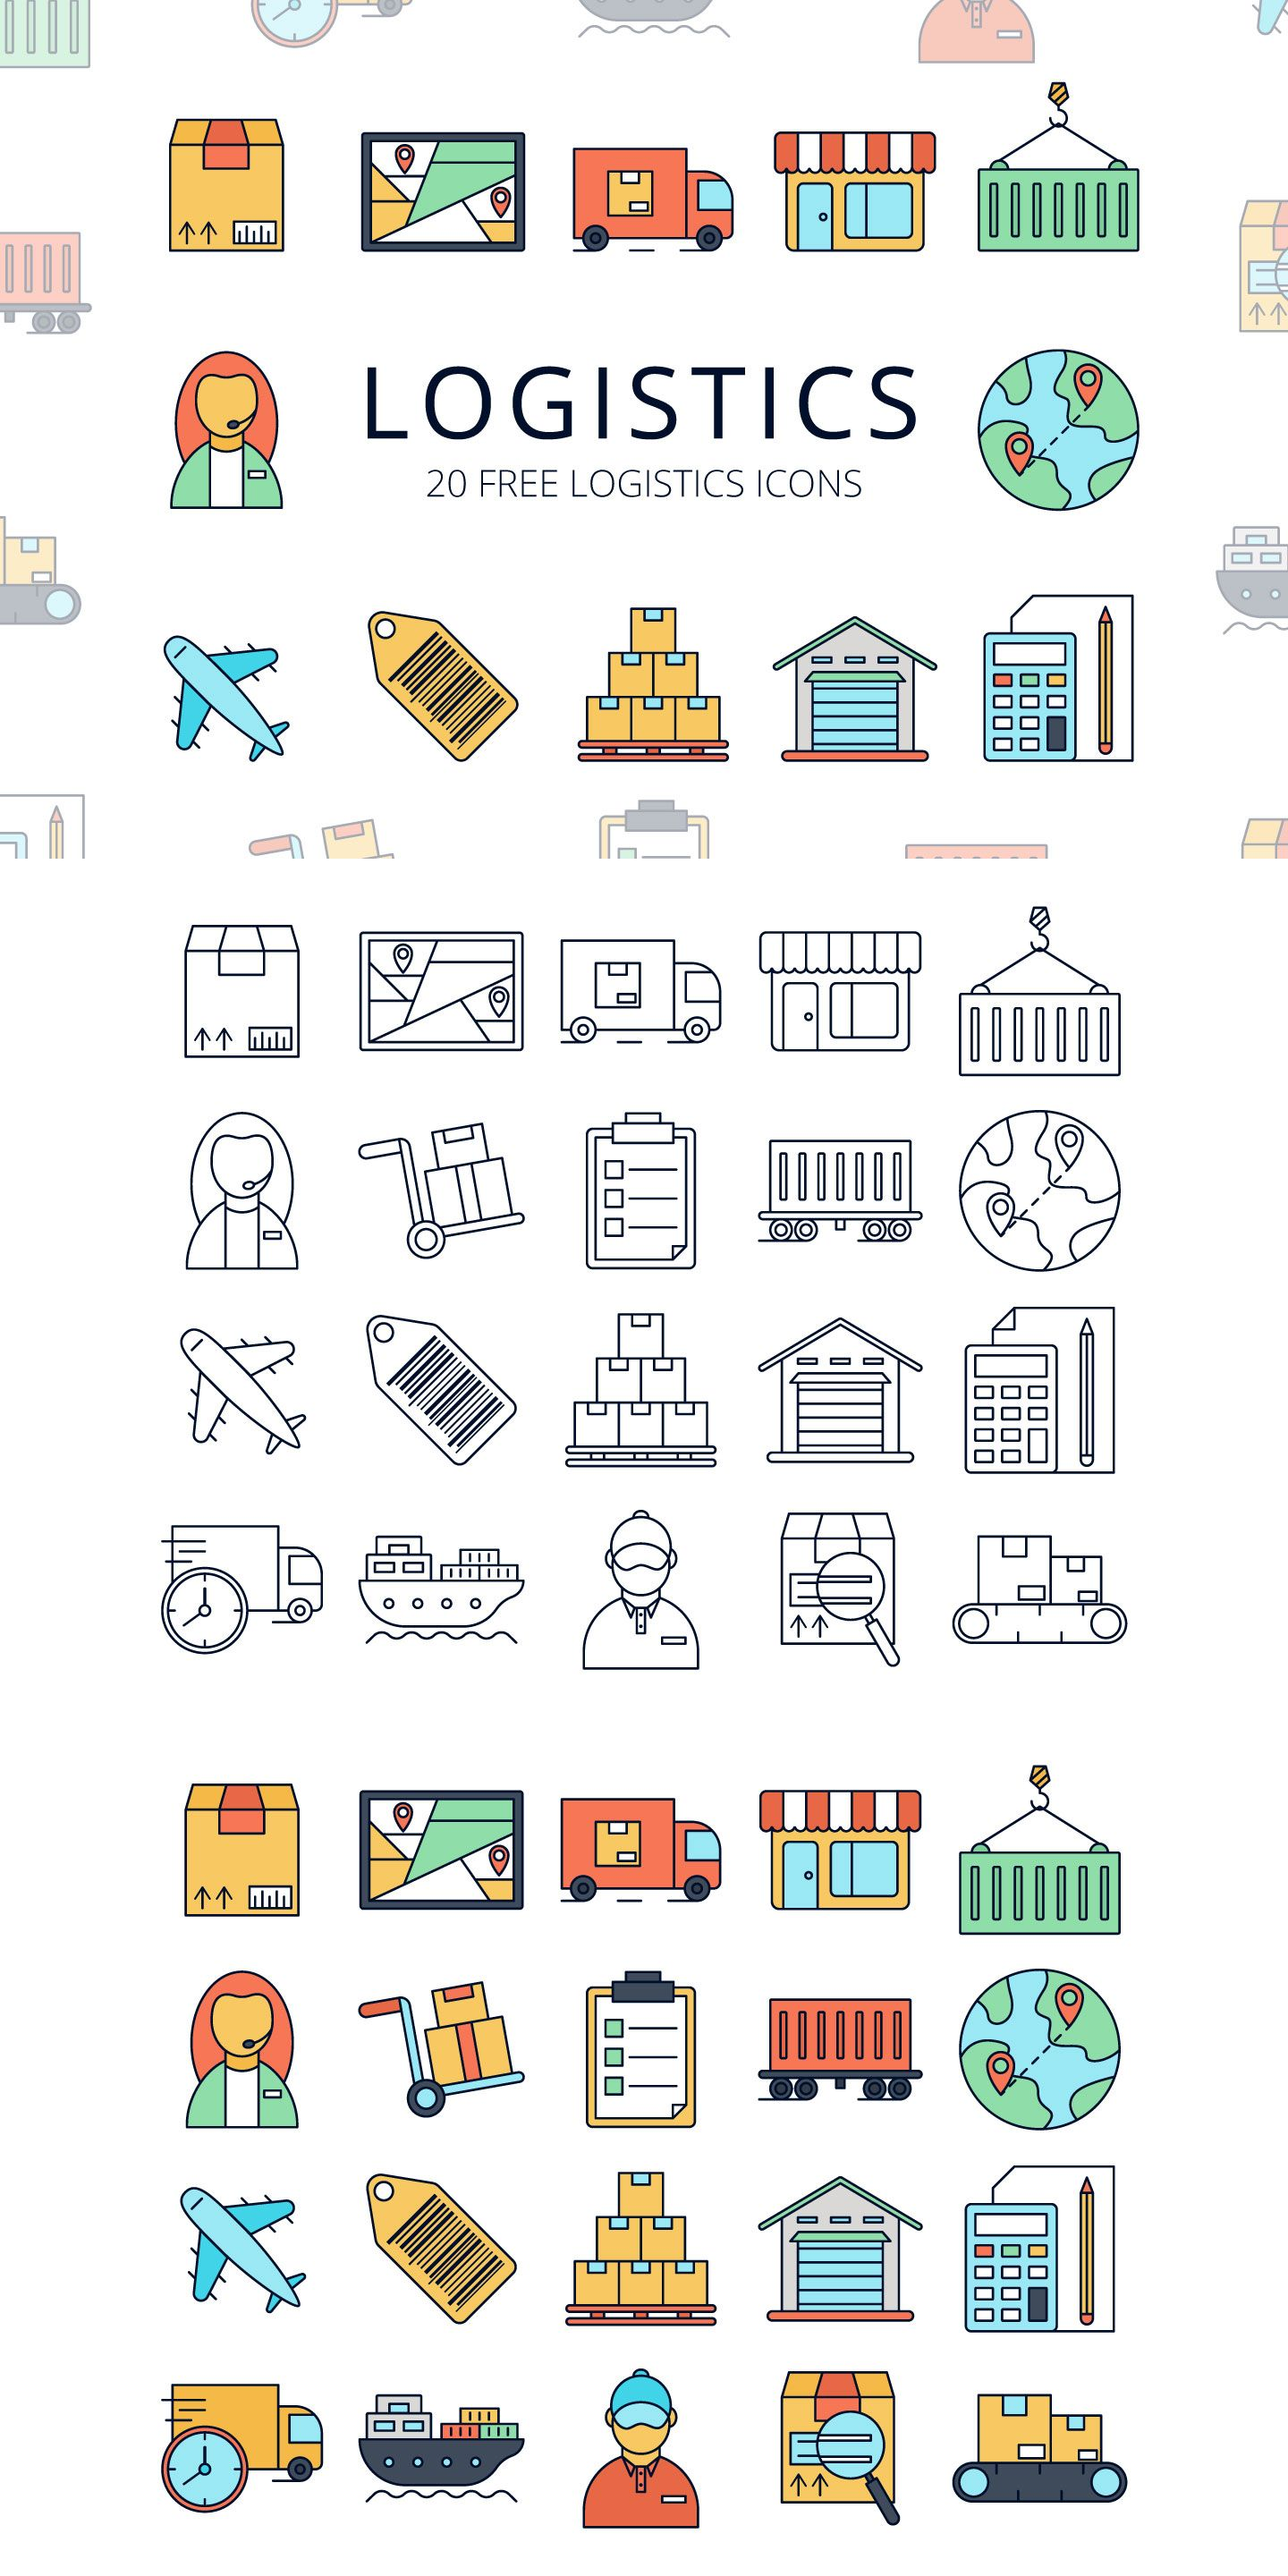 Logistics Vector Free Icon Set is a useful thematic set